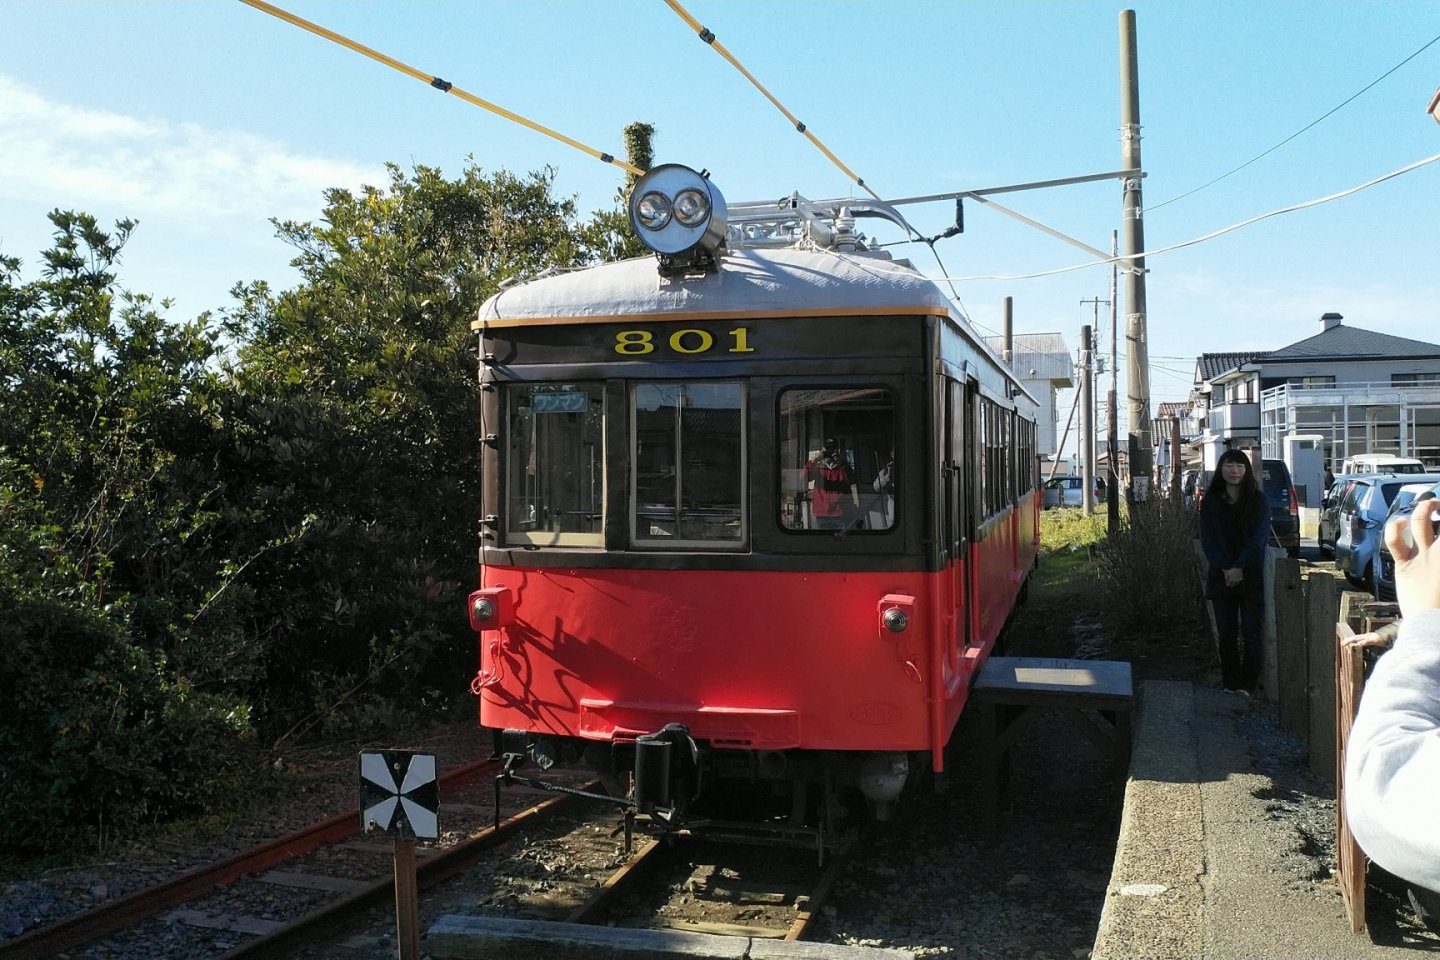 An old railcar used as a presentation room